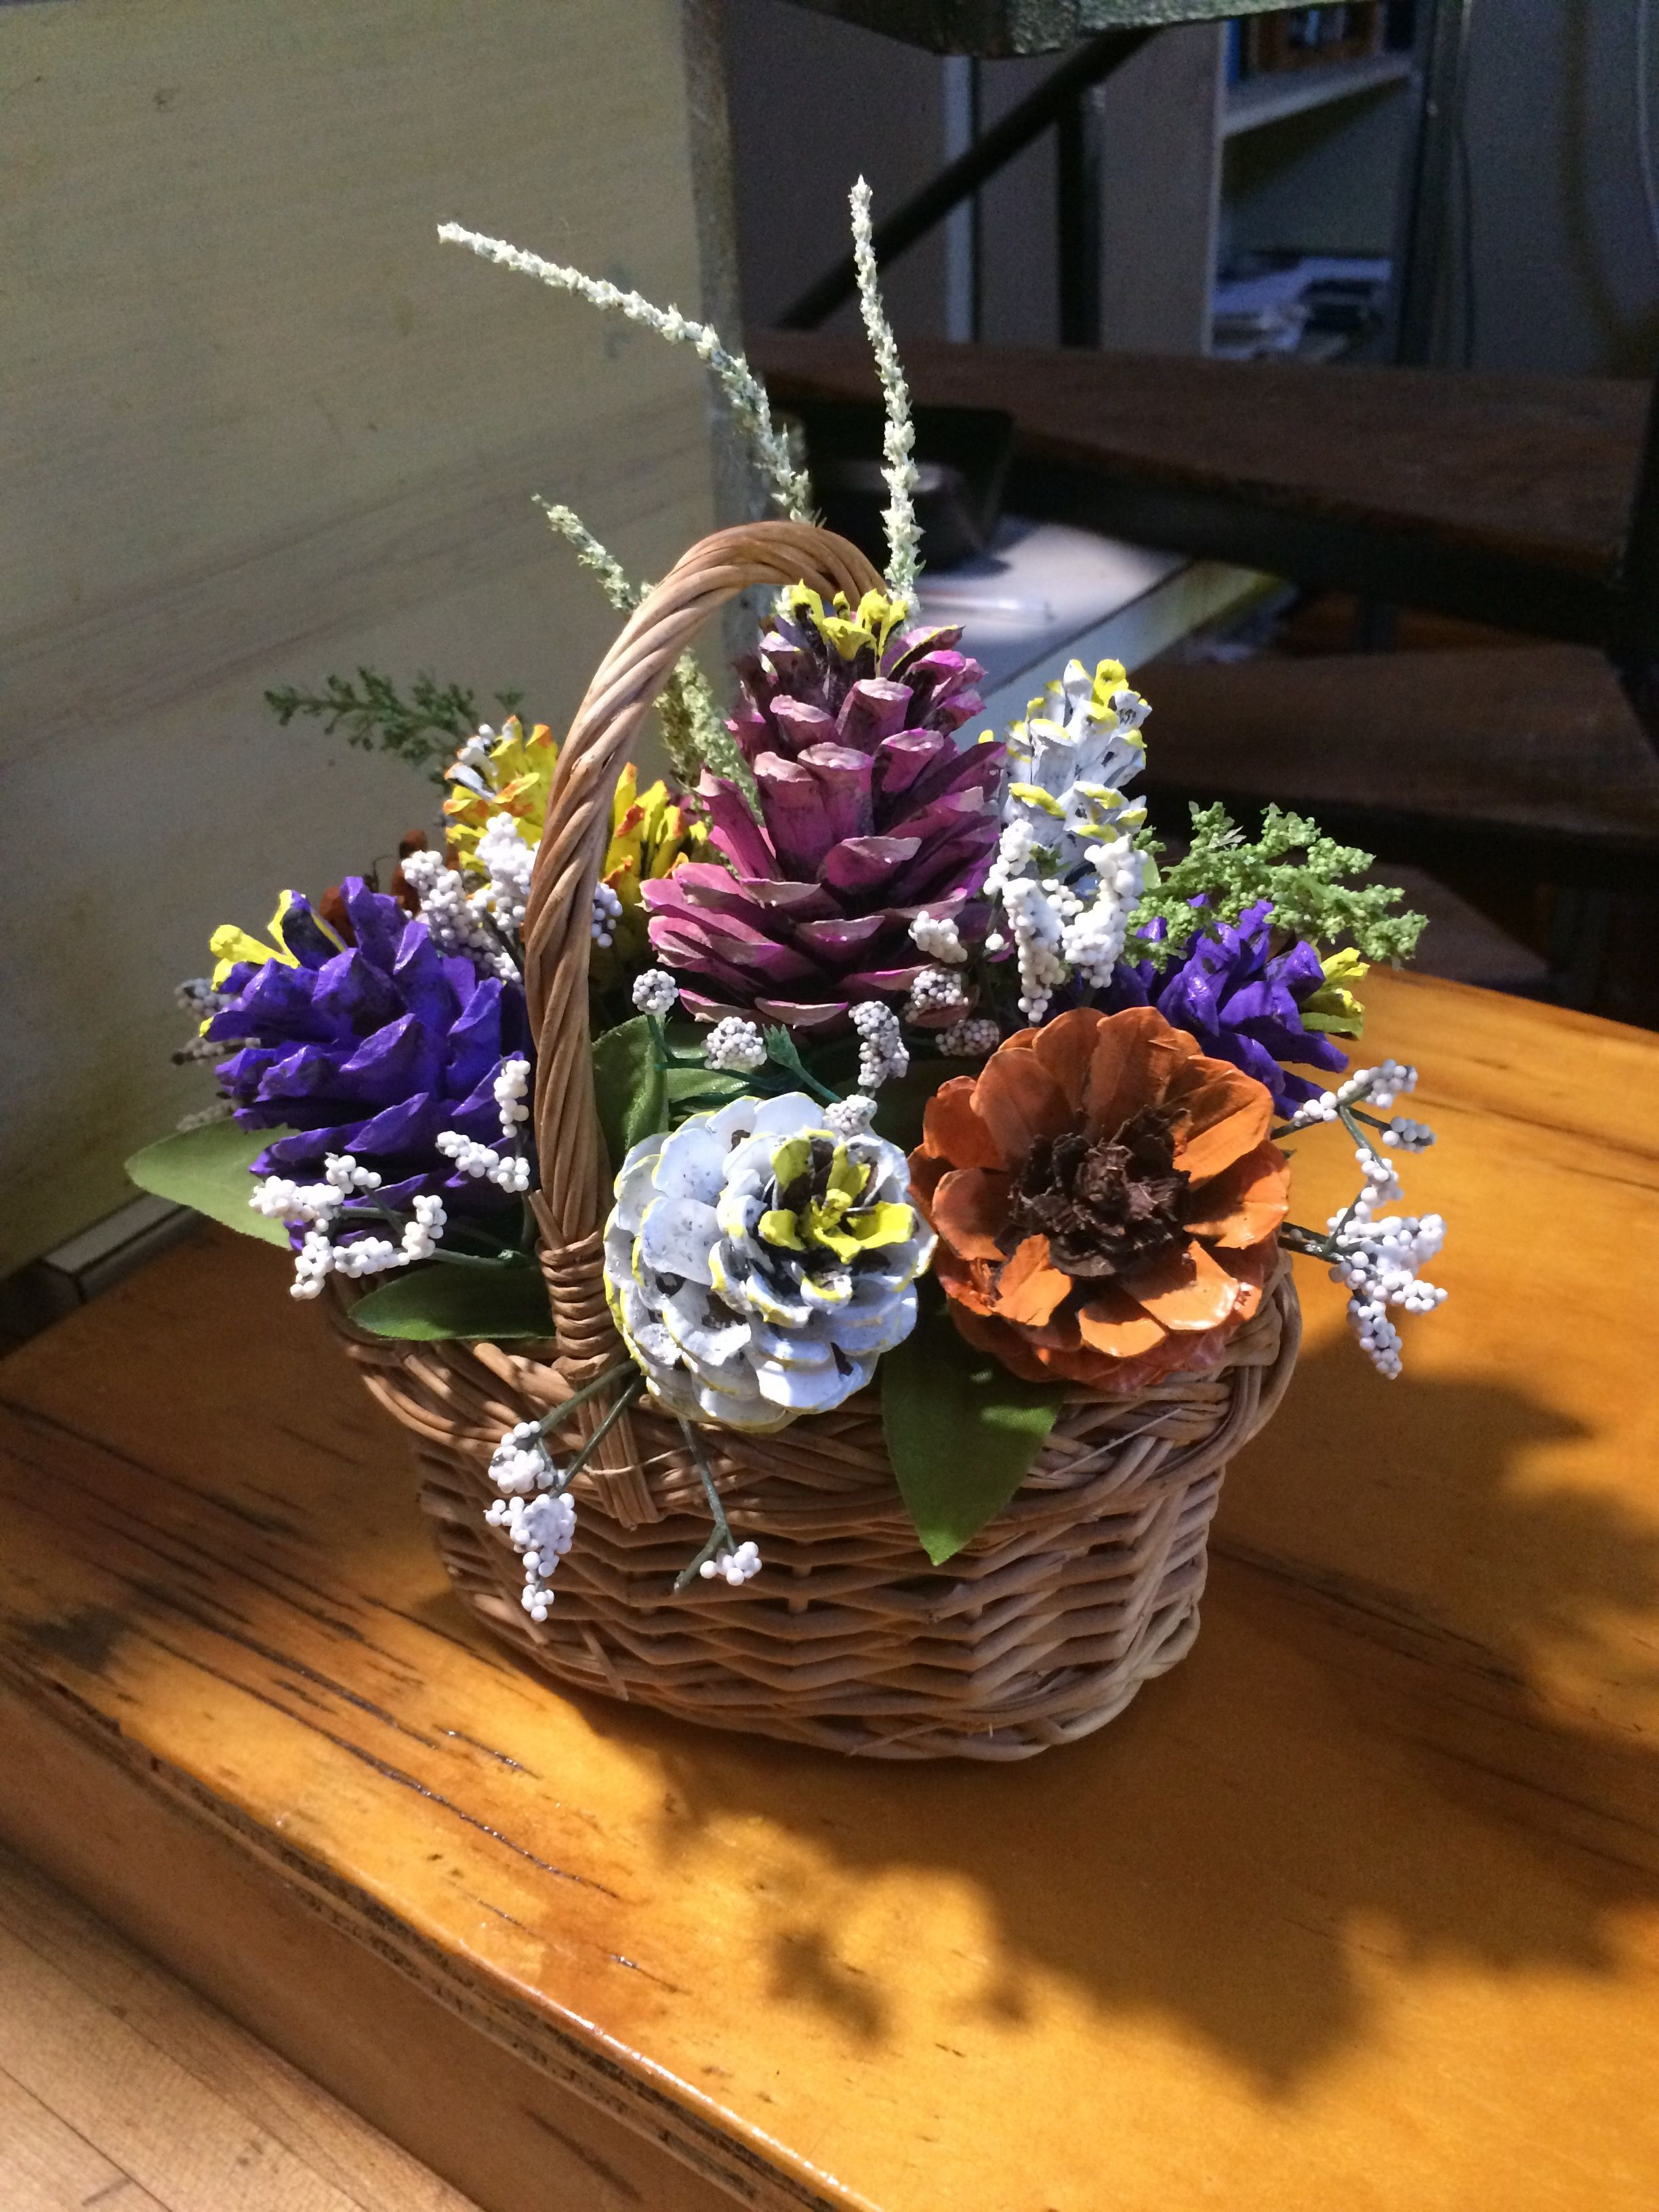 Painted Pinecone Flowers In Basket By Cat Pine Cone Decorations Painted Pinecones Pine Cone Crafts